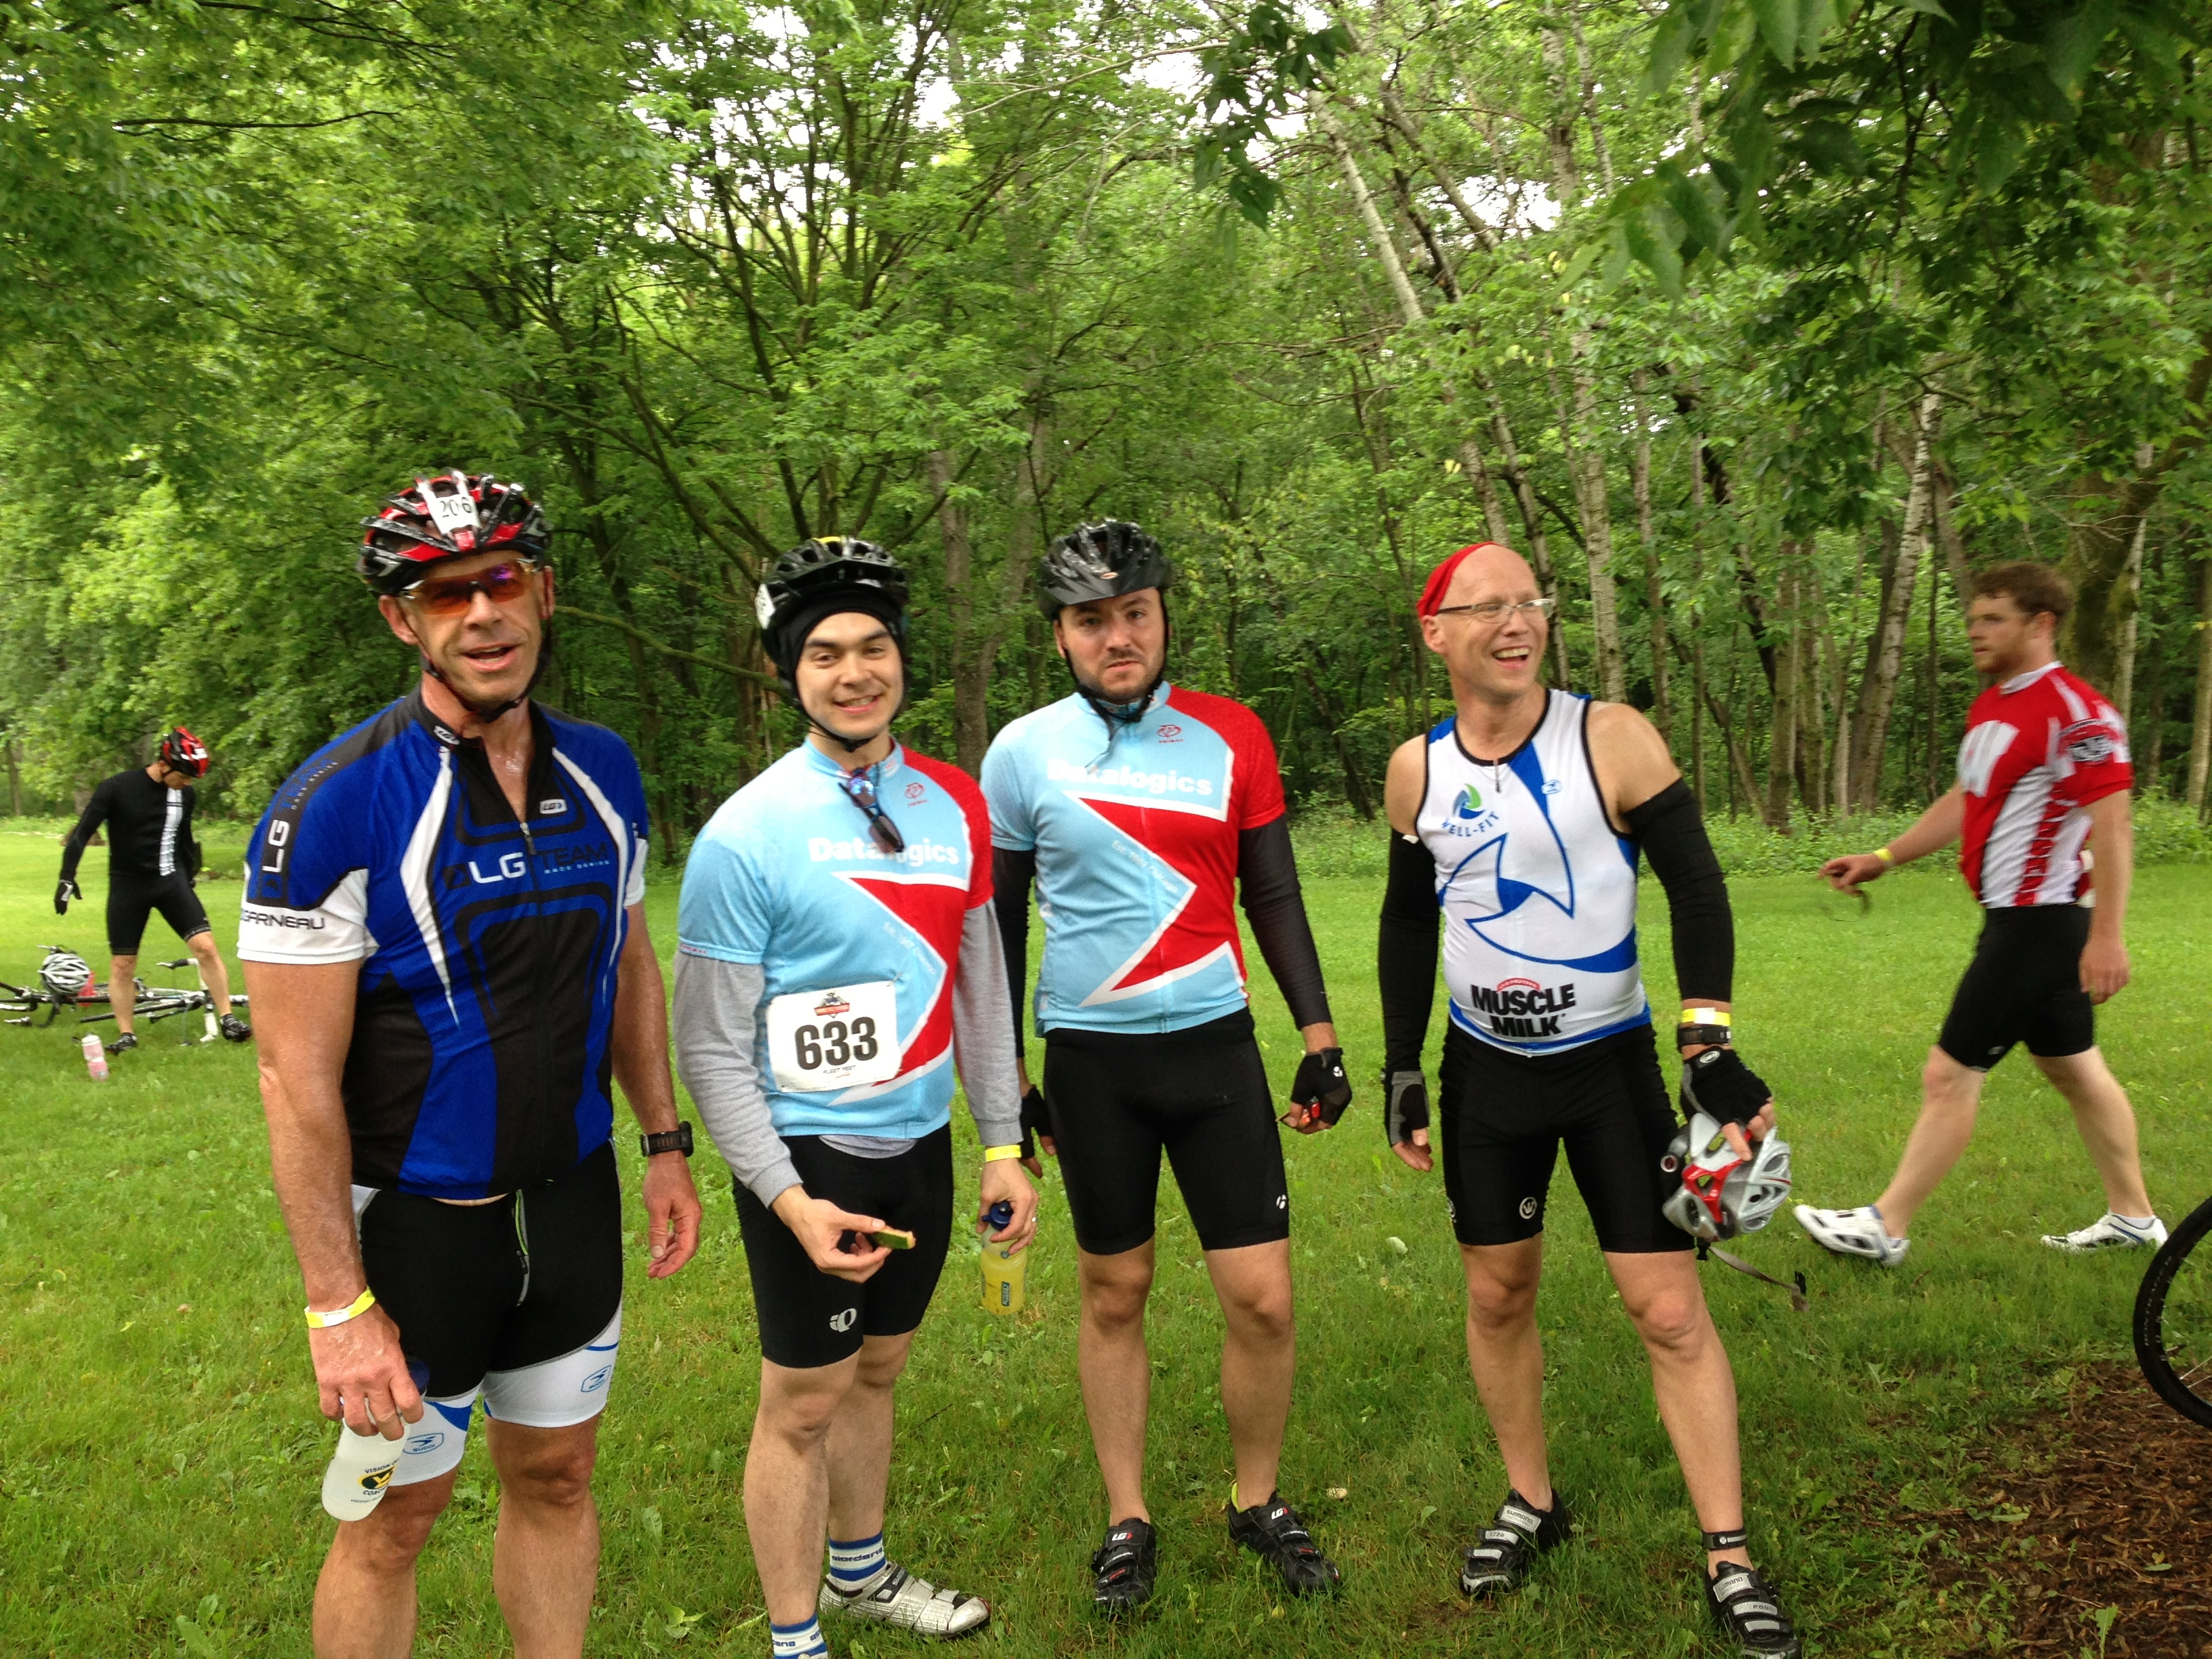 DL Cycling Club members Alex and Jeff flanked by other riders